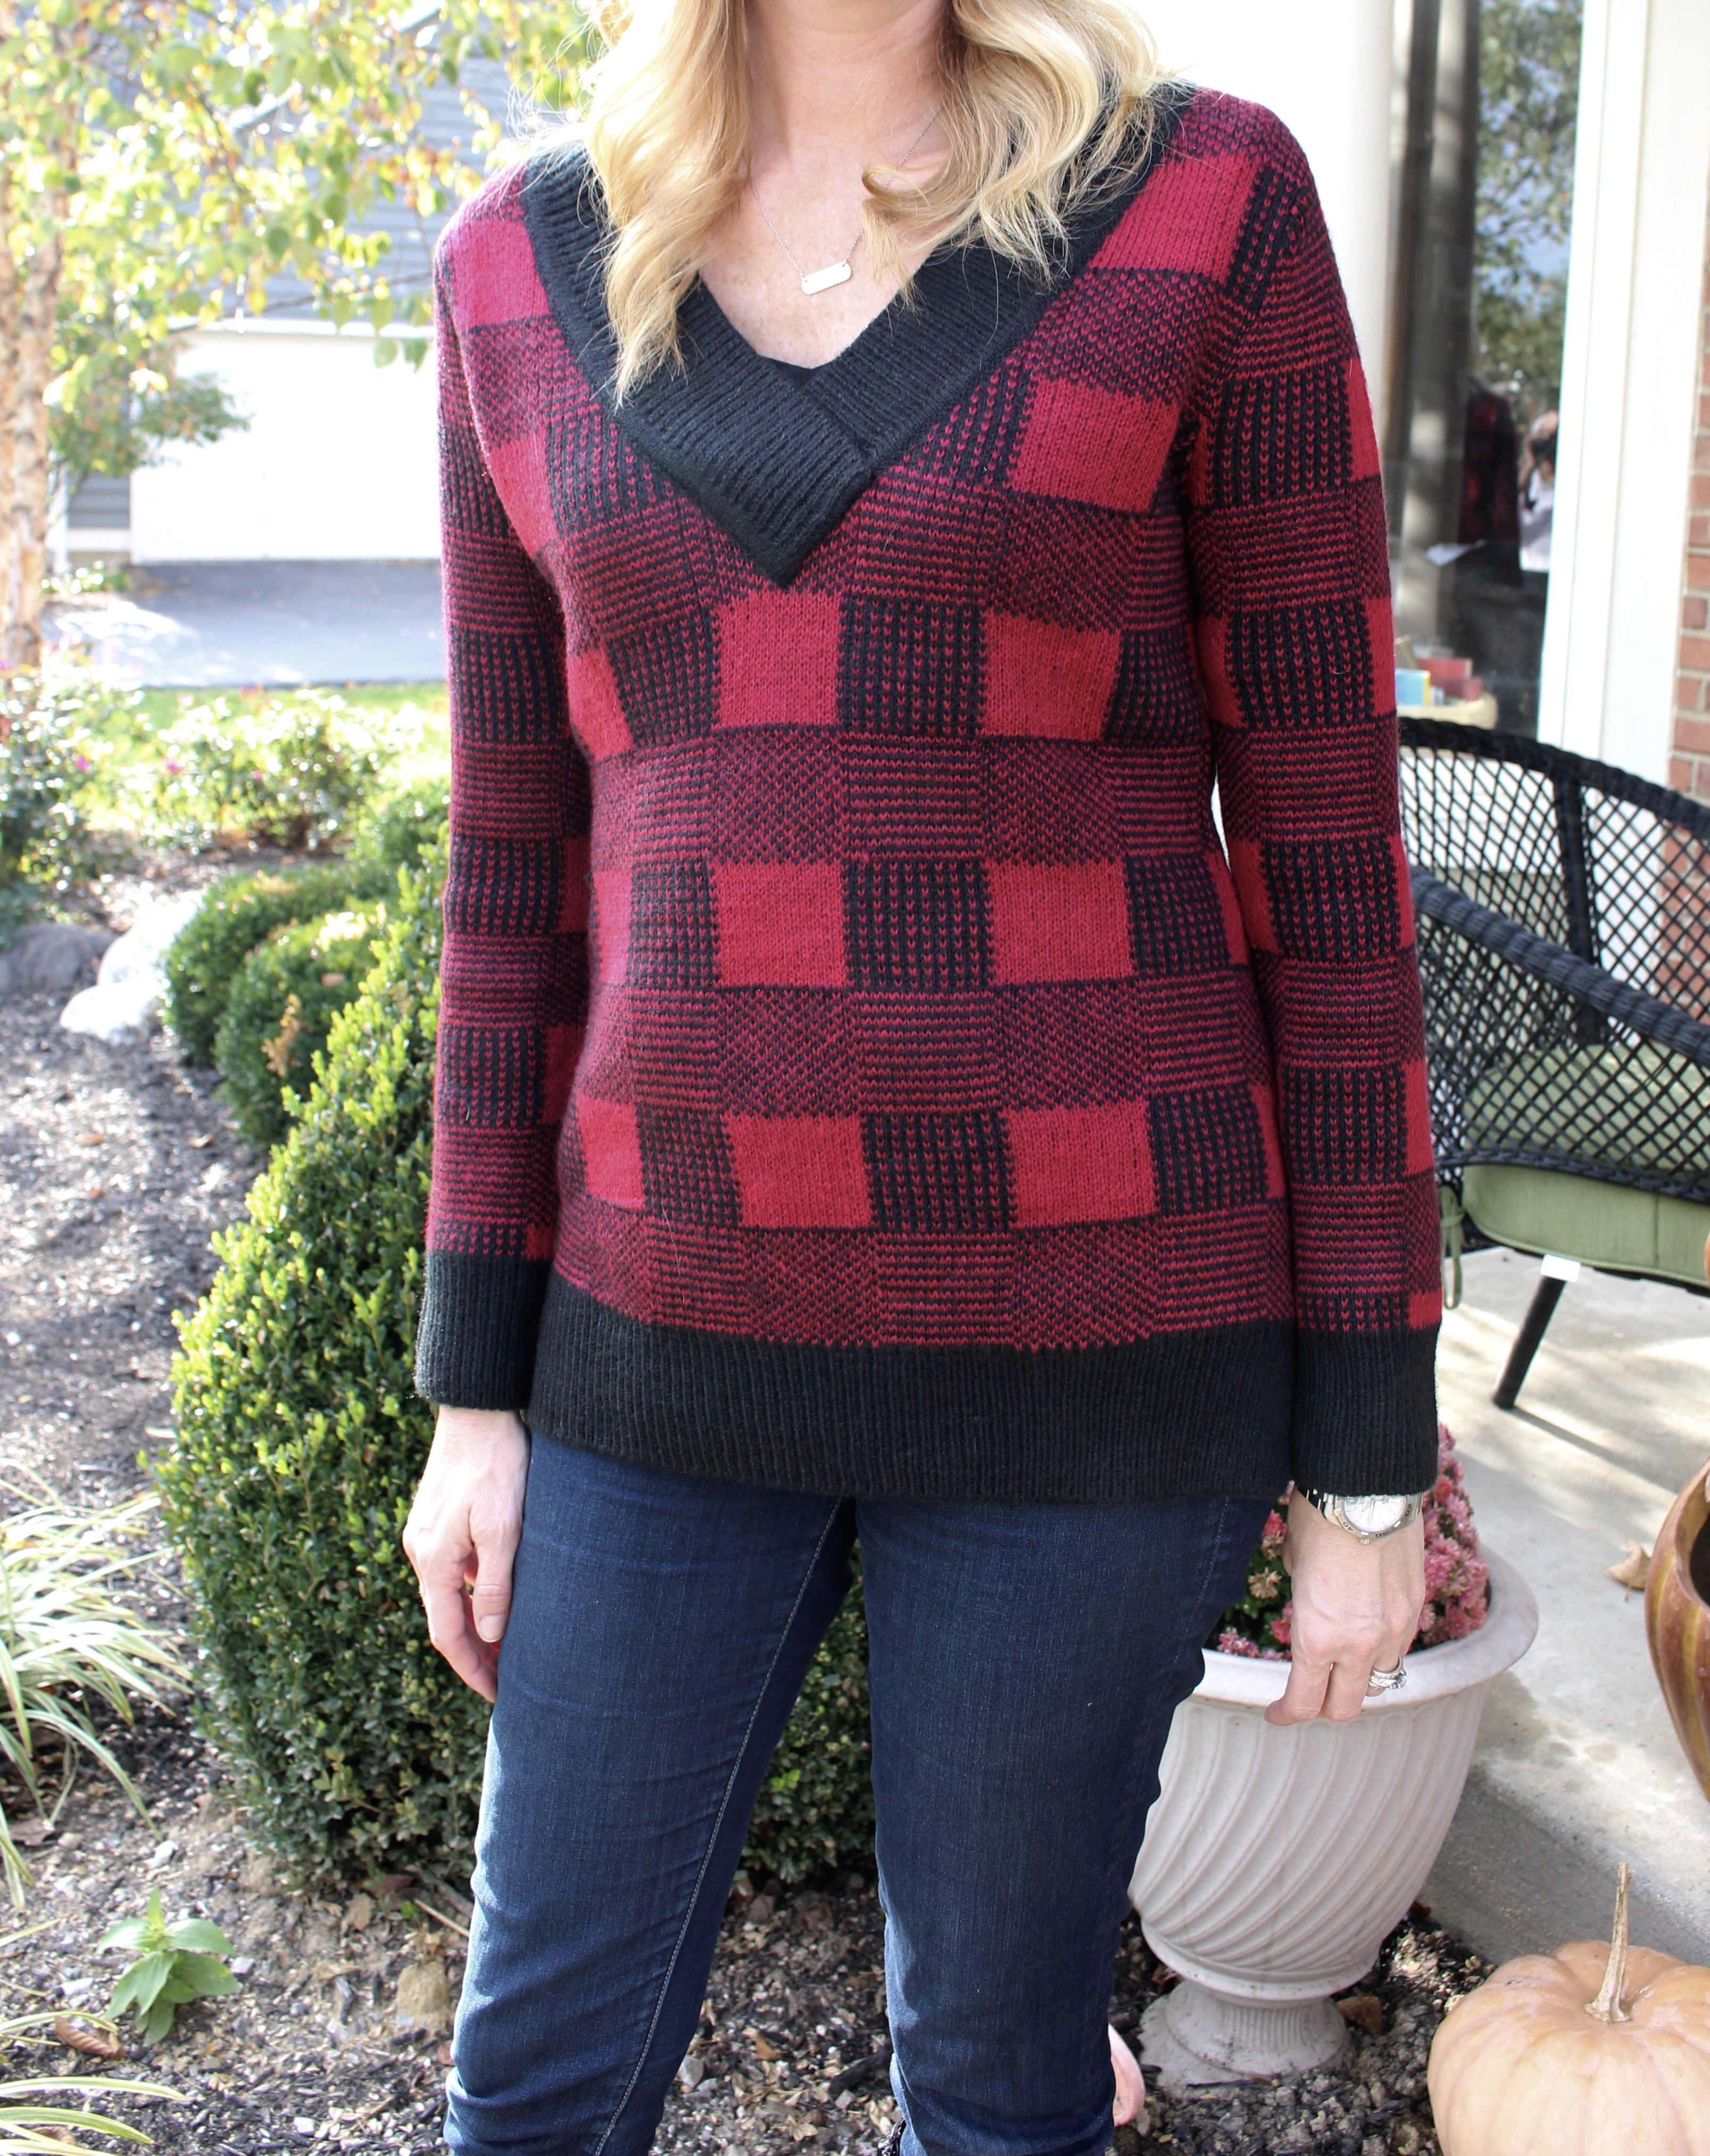 Stitch Fix- plaid sweater- fall and winter fashion- women's fashion- wardrobe- personal styling box- monthly subscription box- casual look- style- outfits